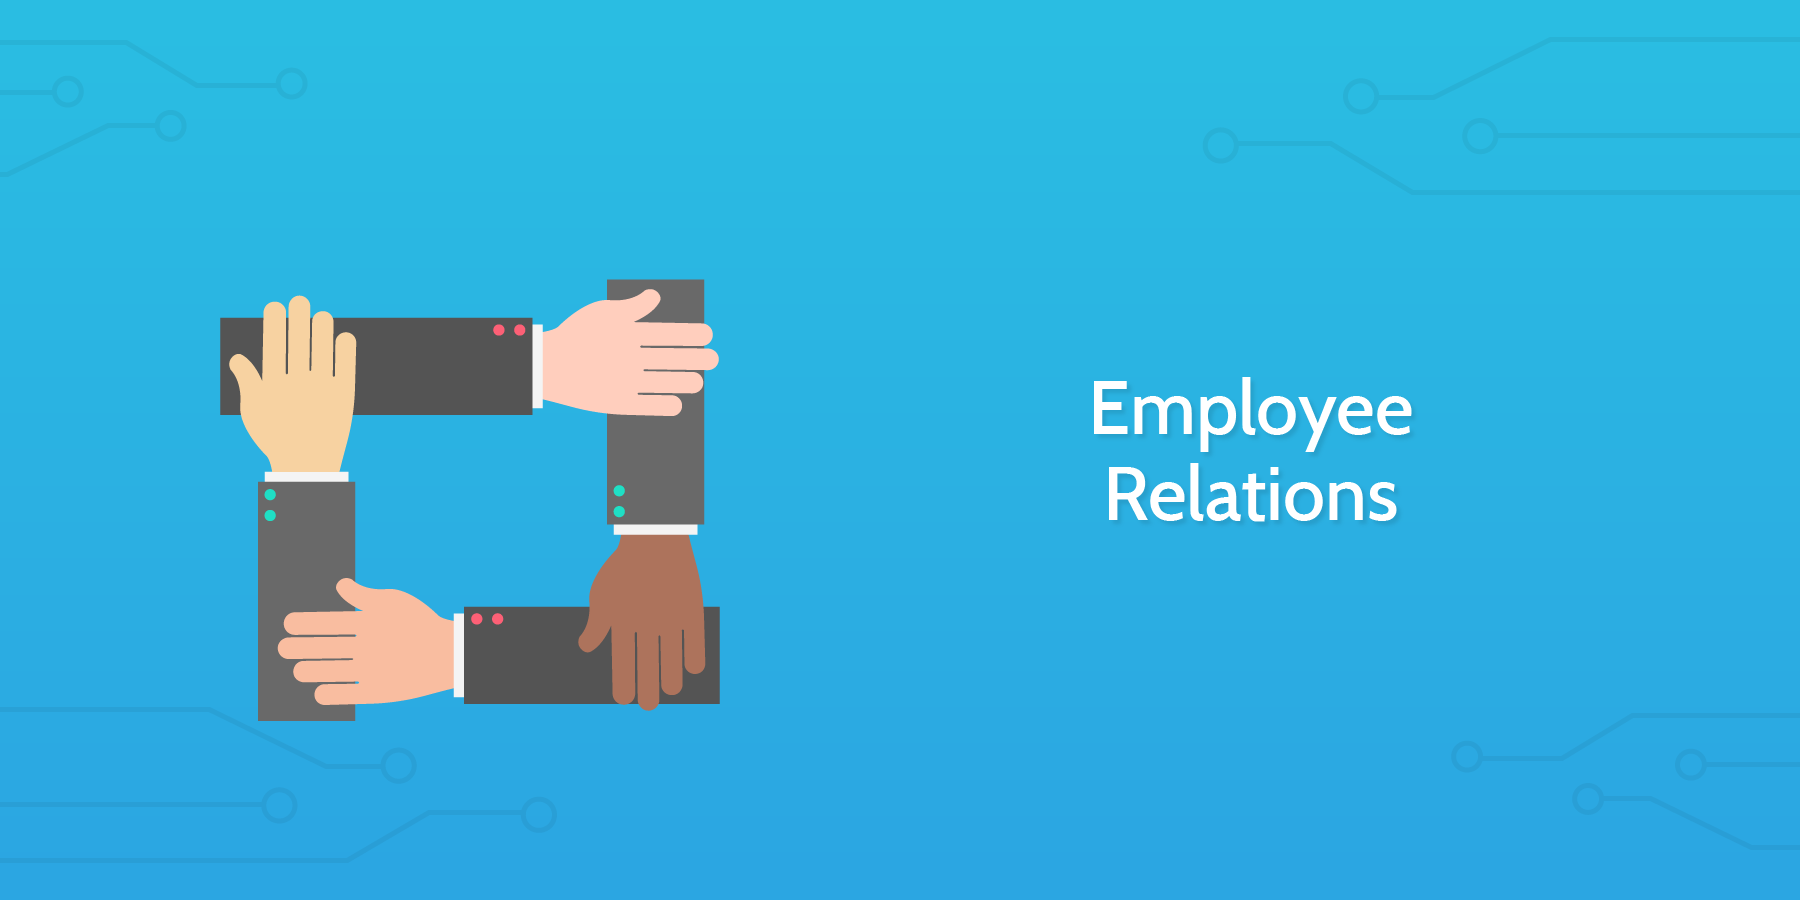 Employee Relations - introduction